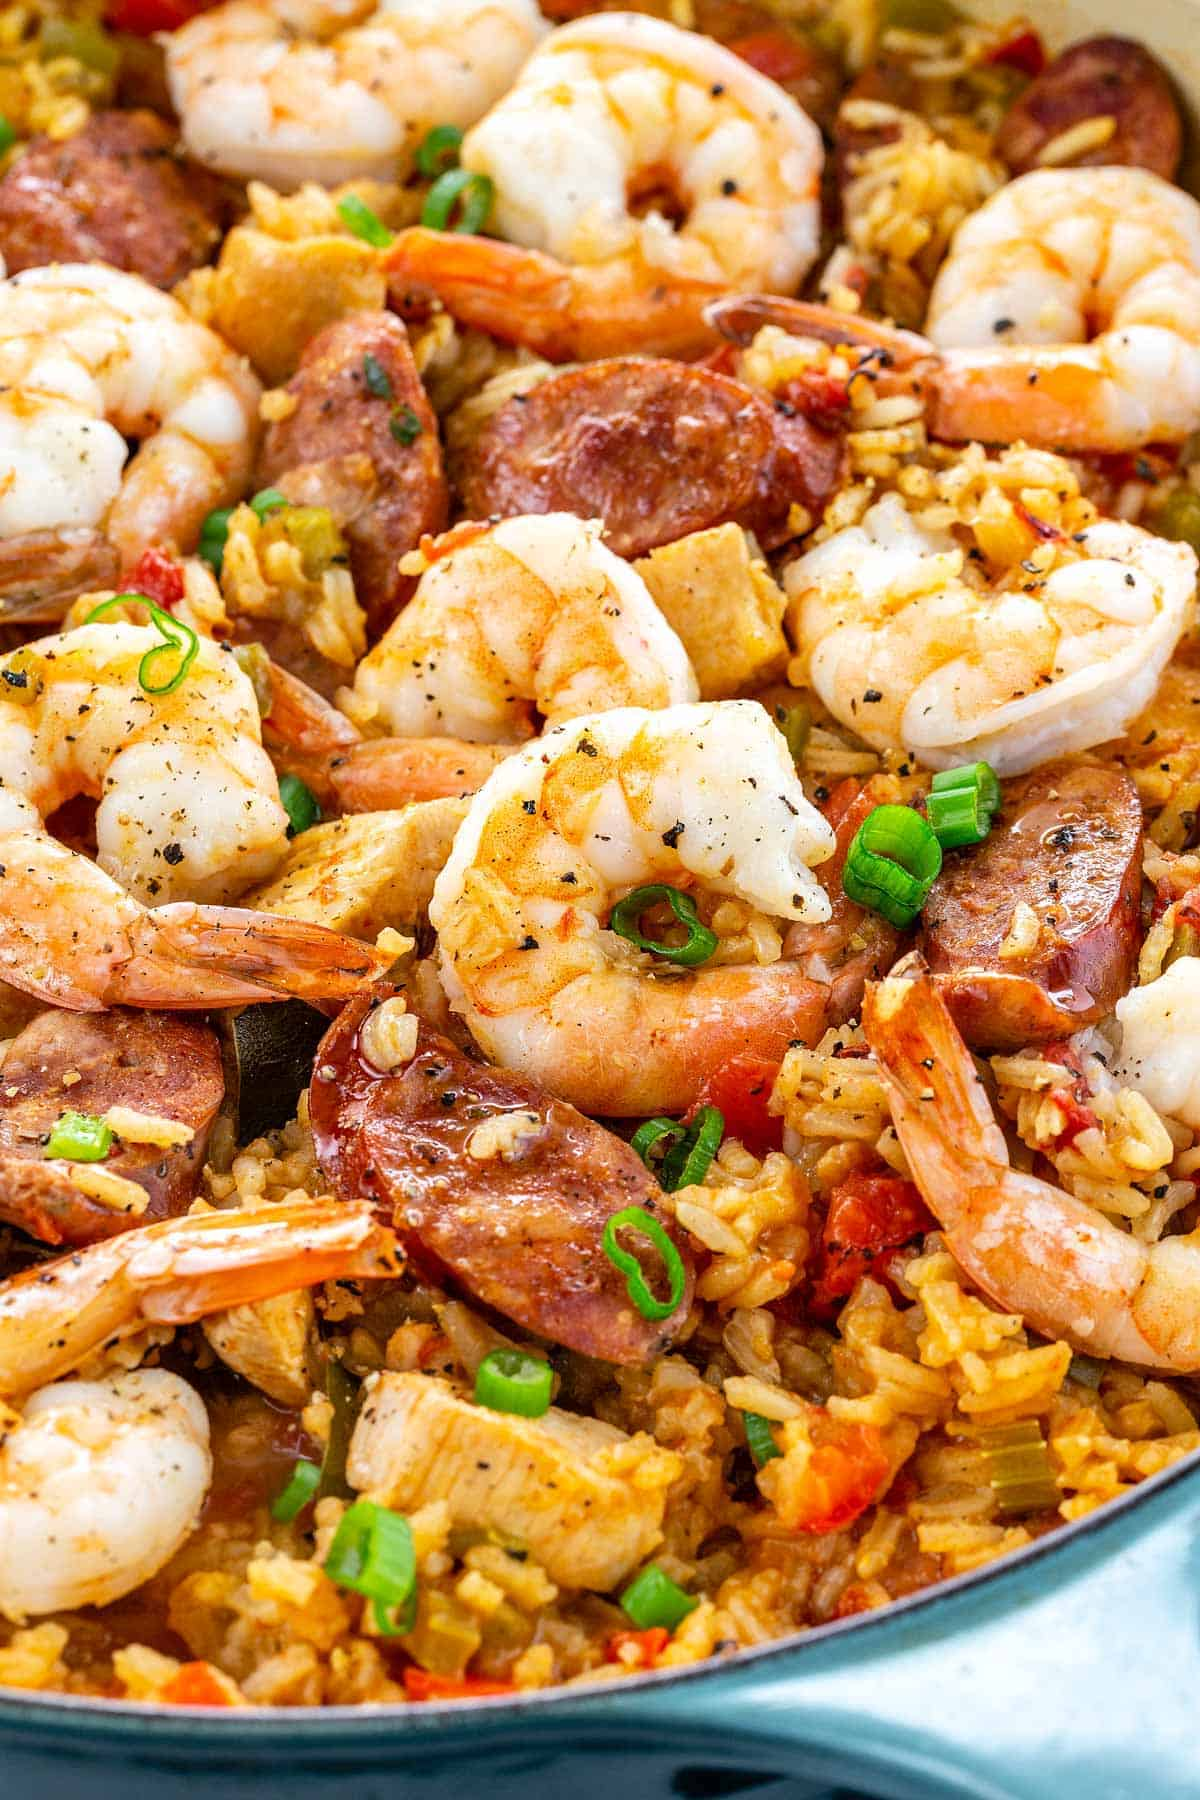 Jambalaya is an appetizing mix of bold creole spices, long grain rice, vegetables, shrimp, chicken, and andouille sausage. #jambalaya #neworleans #creole